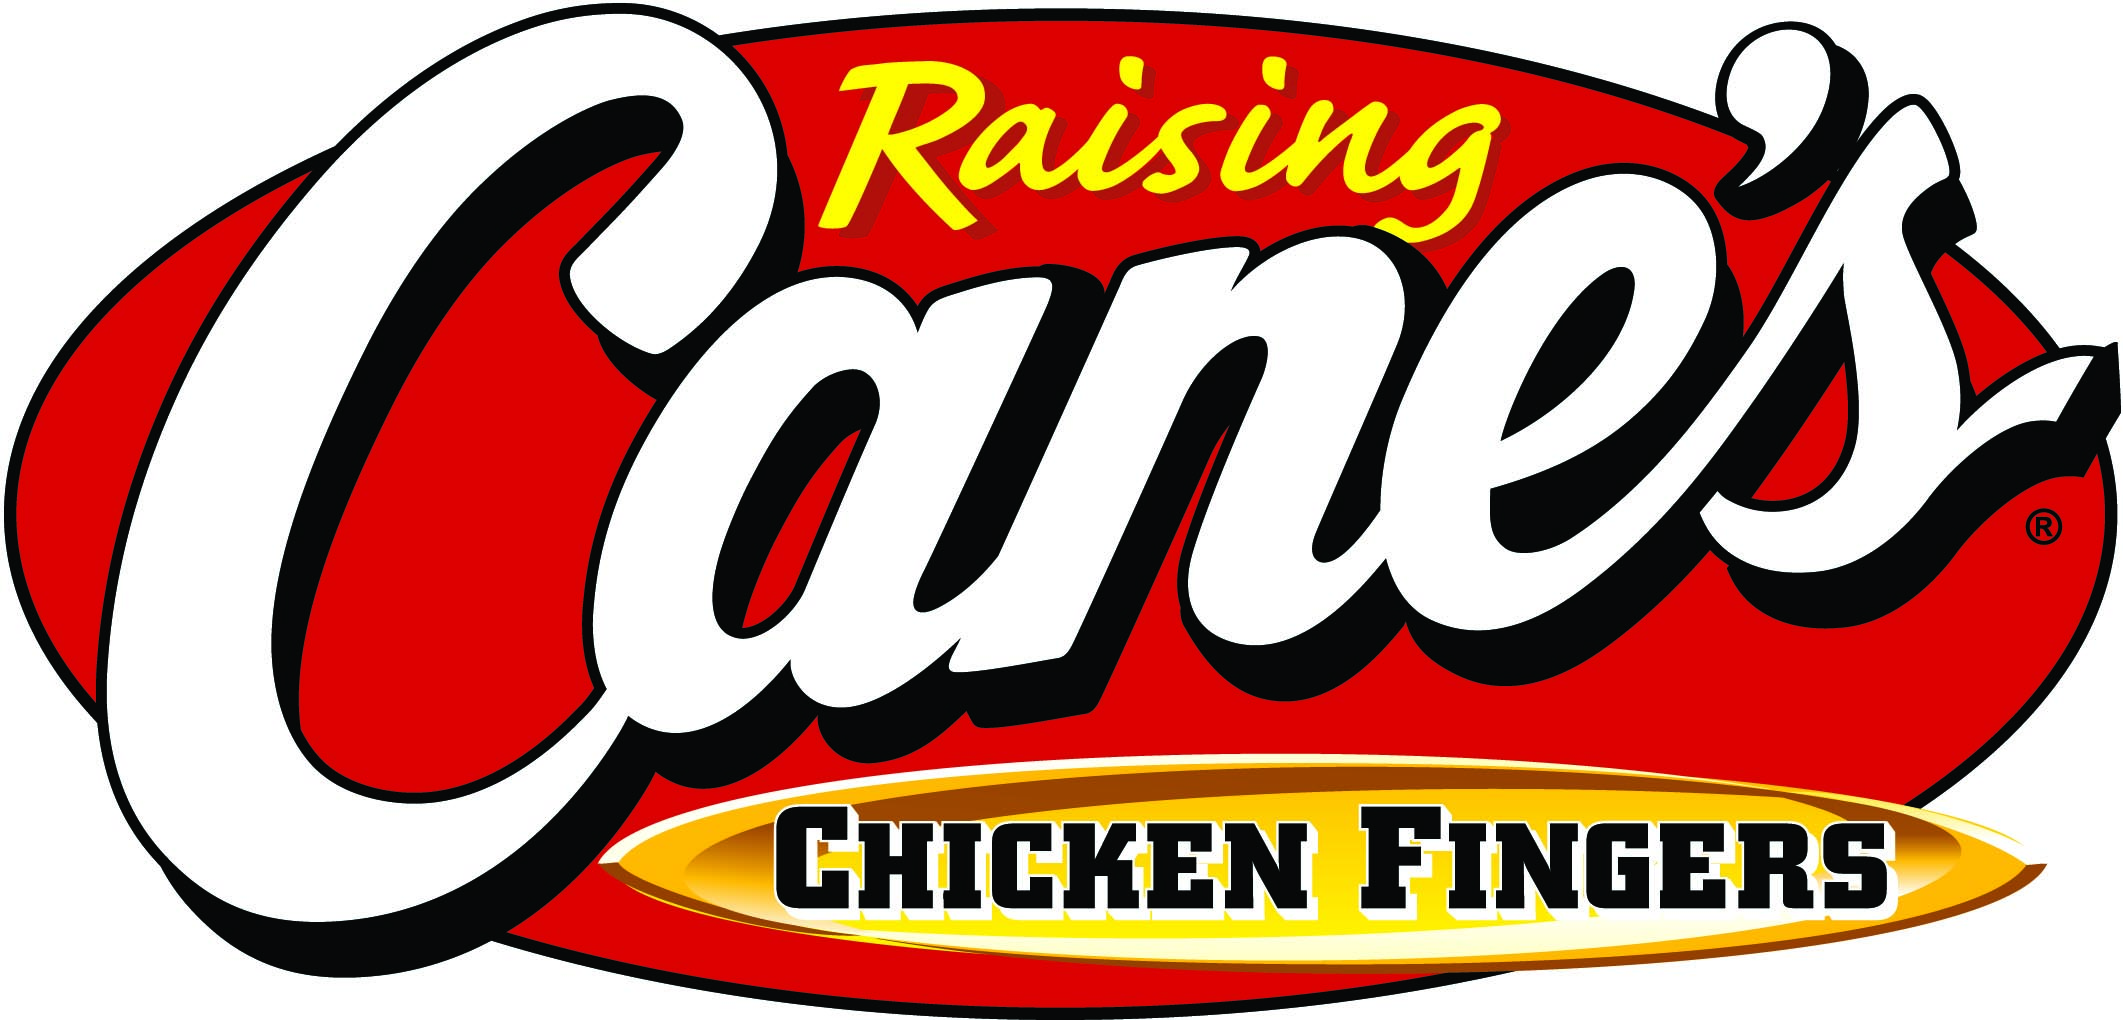 Raising Canes's Chicken Fingers